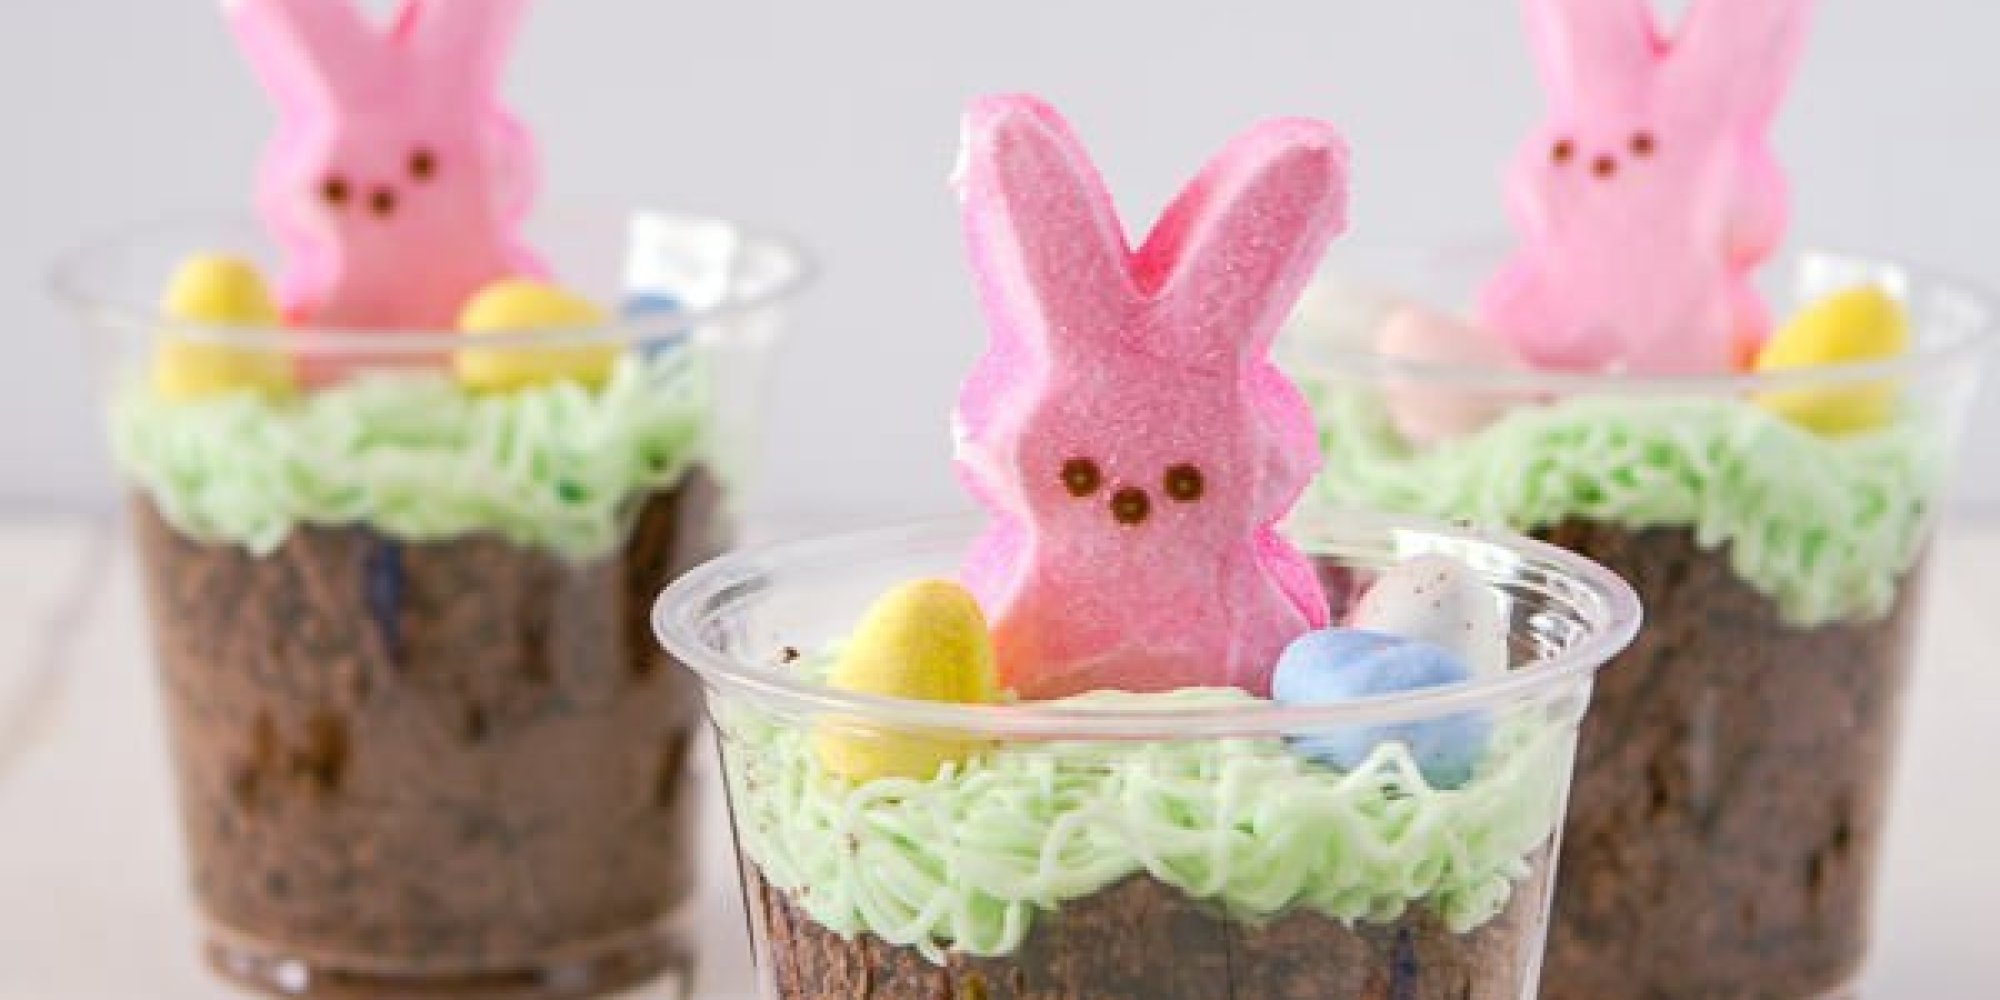 Bunny Dessert Recipes Are The Most Adorable Way To